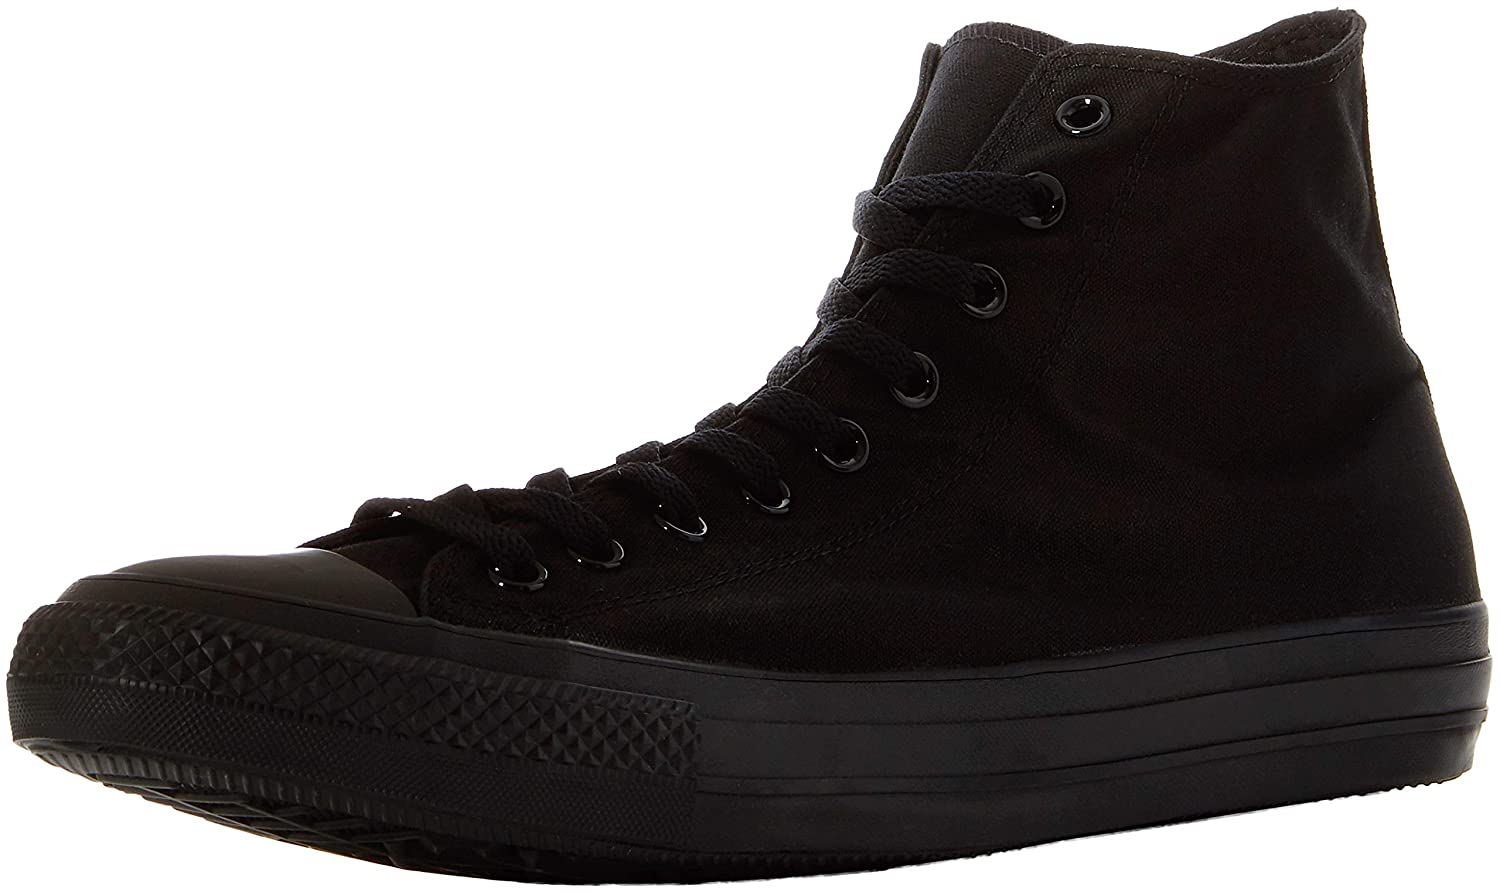 Black Monochrome Converse Women's Chuck Taylor All Star Leather High Top Sneaker